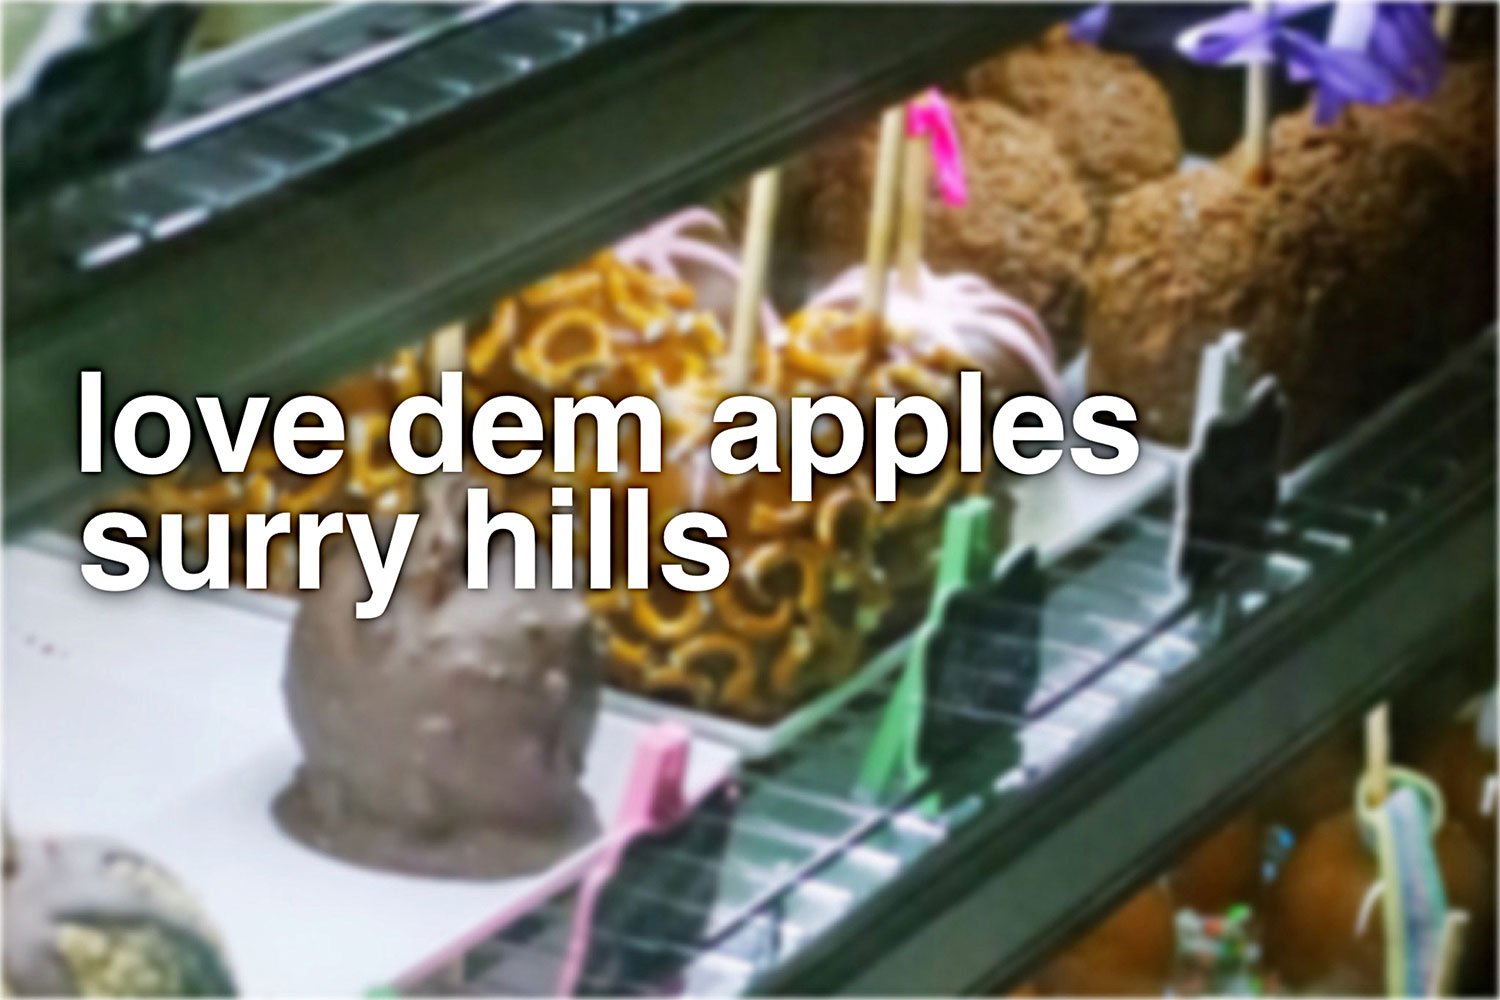 Sydney Food Blog Review of Love Dem Apples, Surry Hills